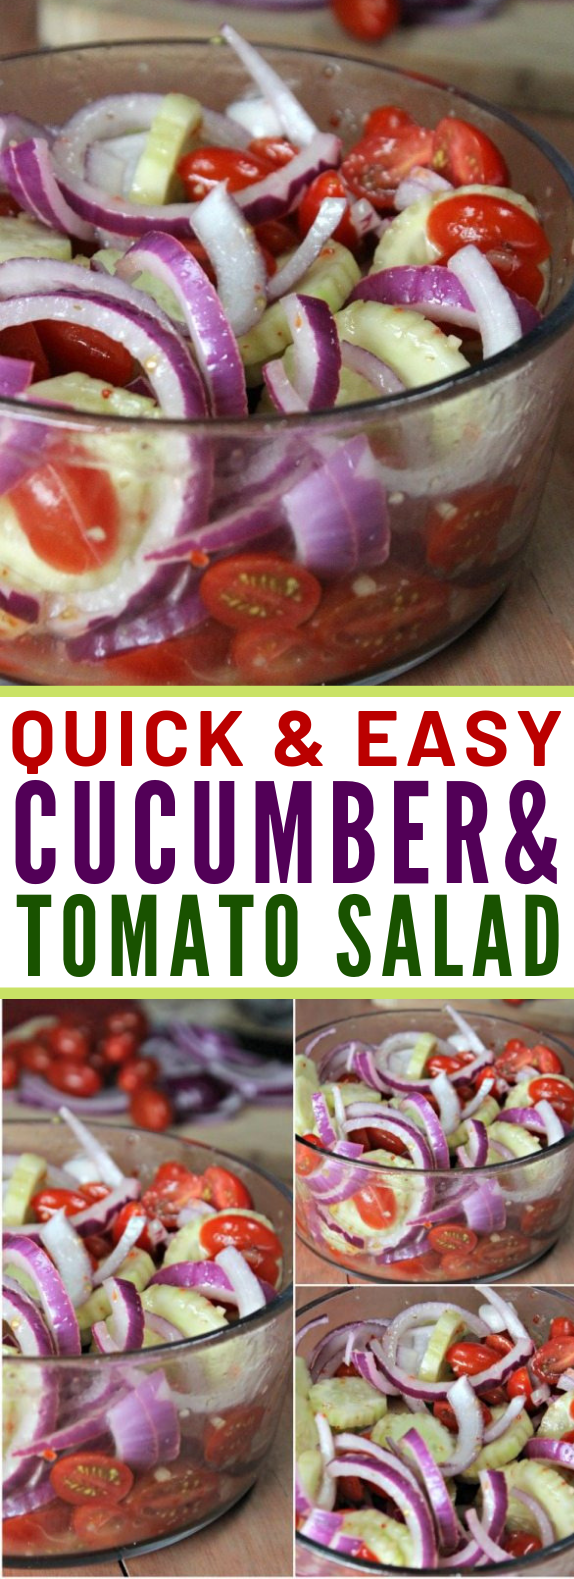 QUICK AND EASY CUCUMBER TOMATO SALAD RECIPE #vegetarian #summerrecipe